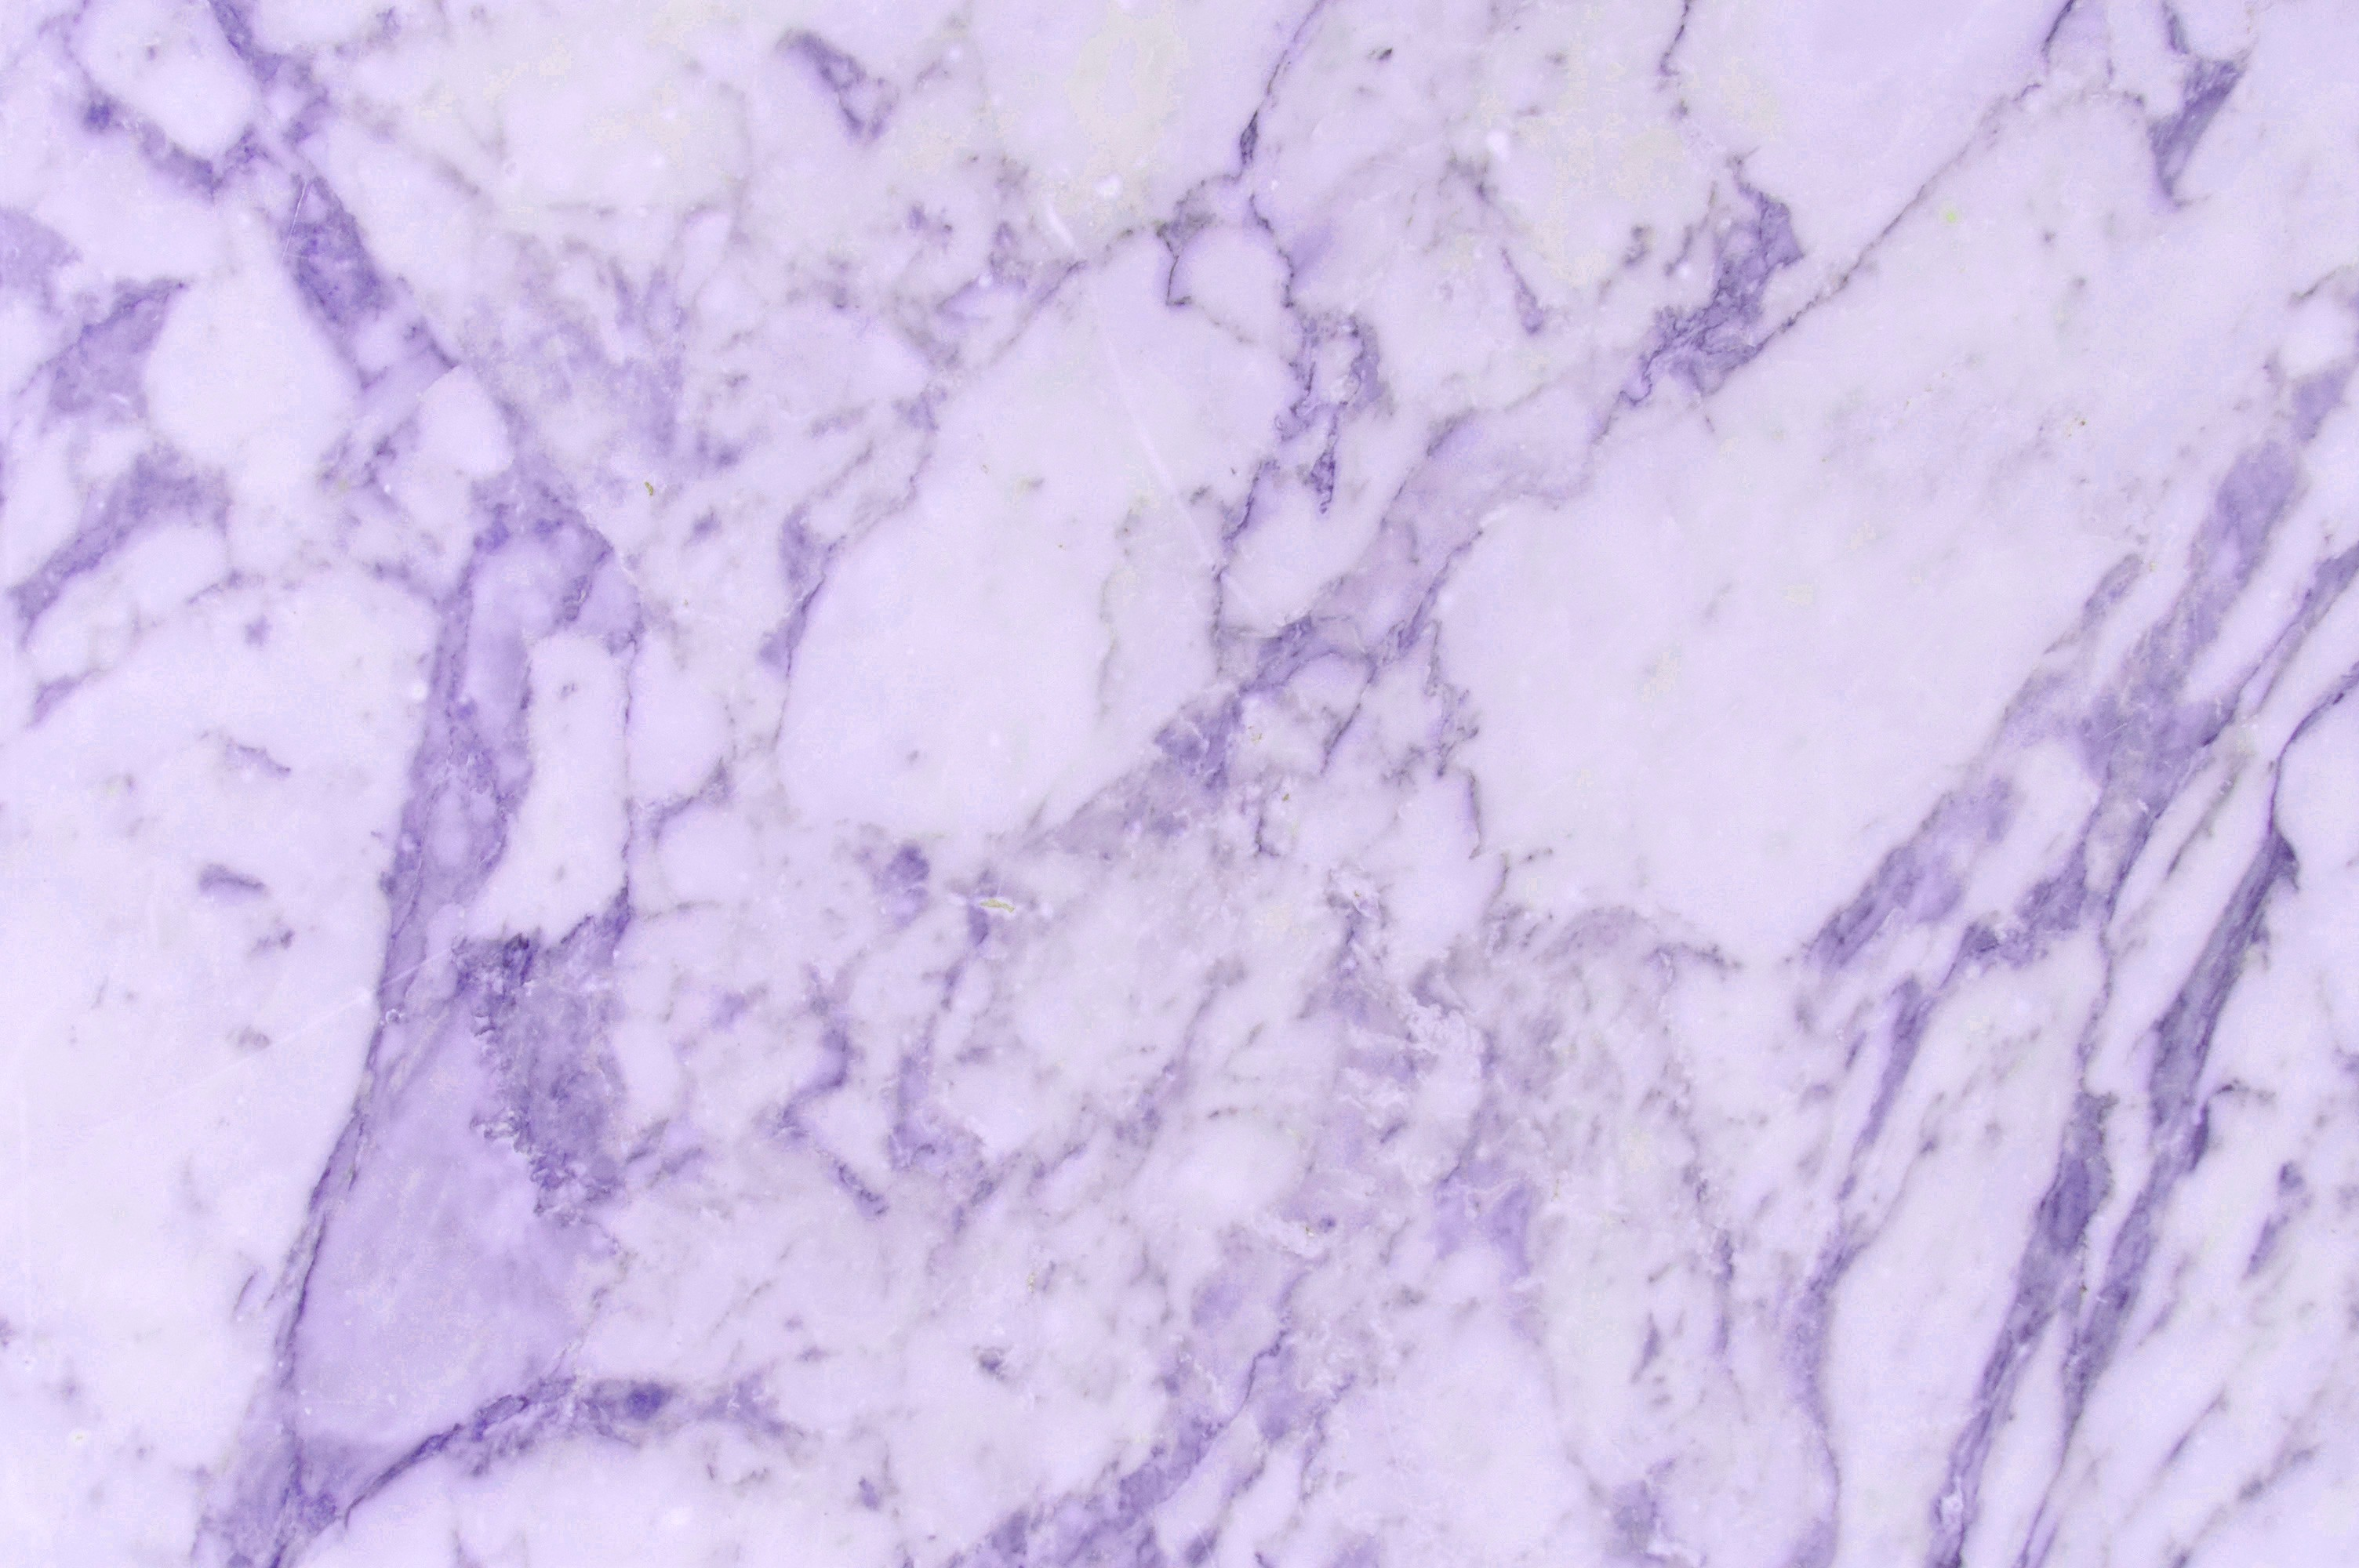 Marble Background Photos Src Marble Background Photos Aesthetic Wallpaper Laptop Marble 3008x2000 Download Hd Wallpaper Wallpapertip